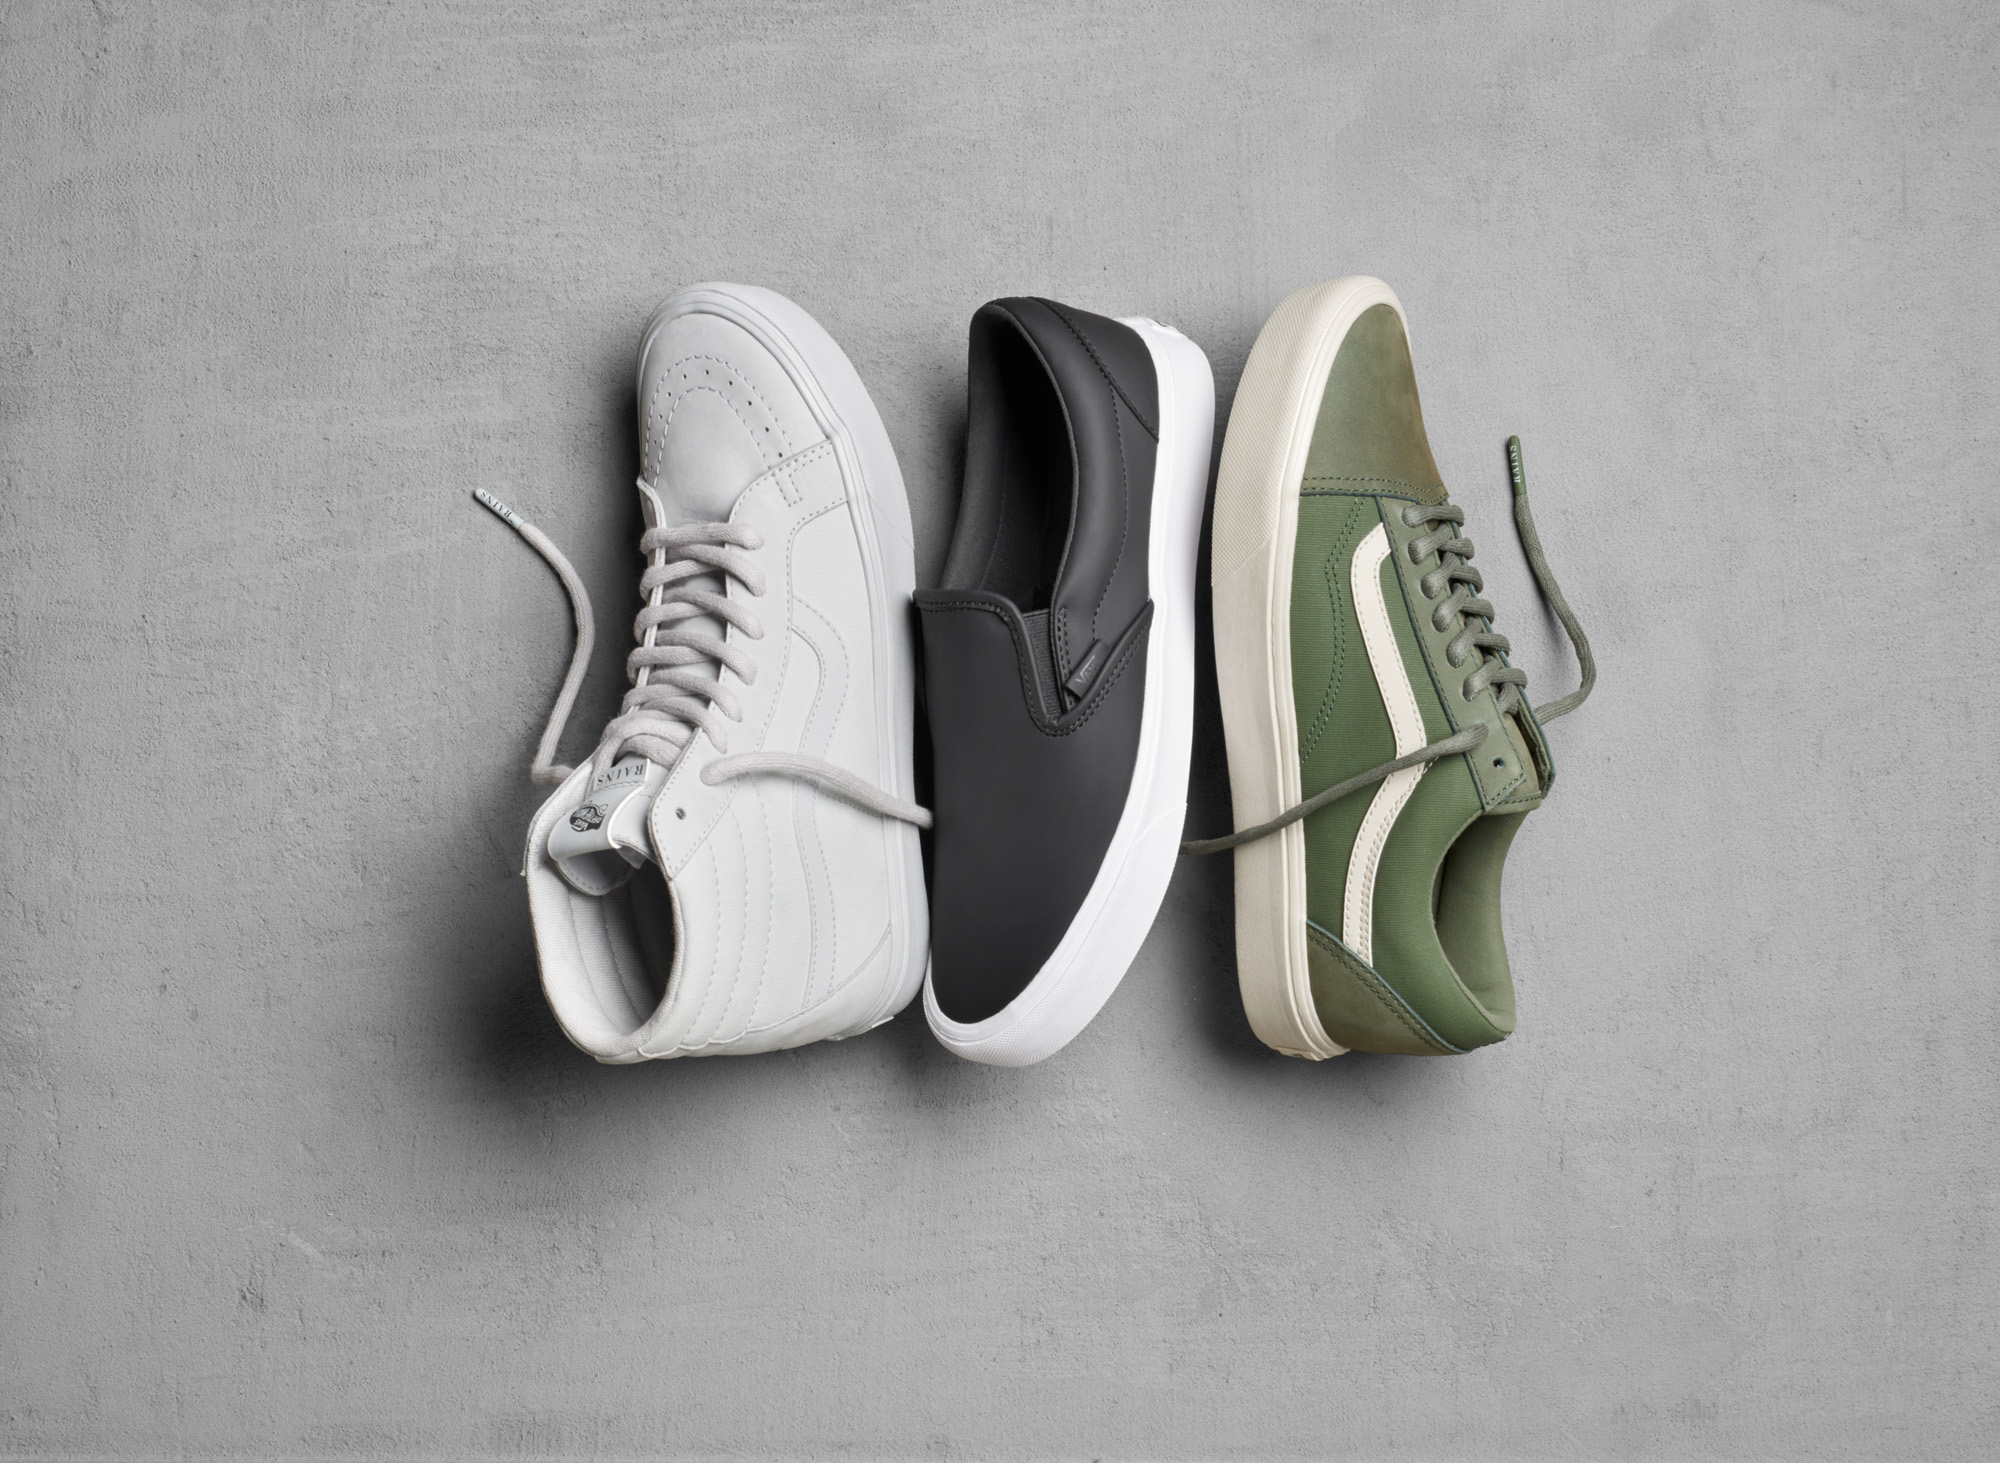 Vans Team up with RAINS for a Limited Edition Spring 2018